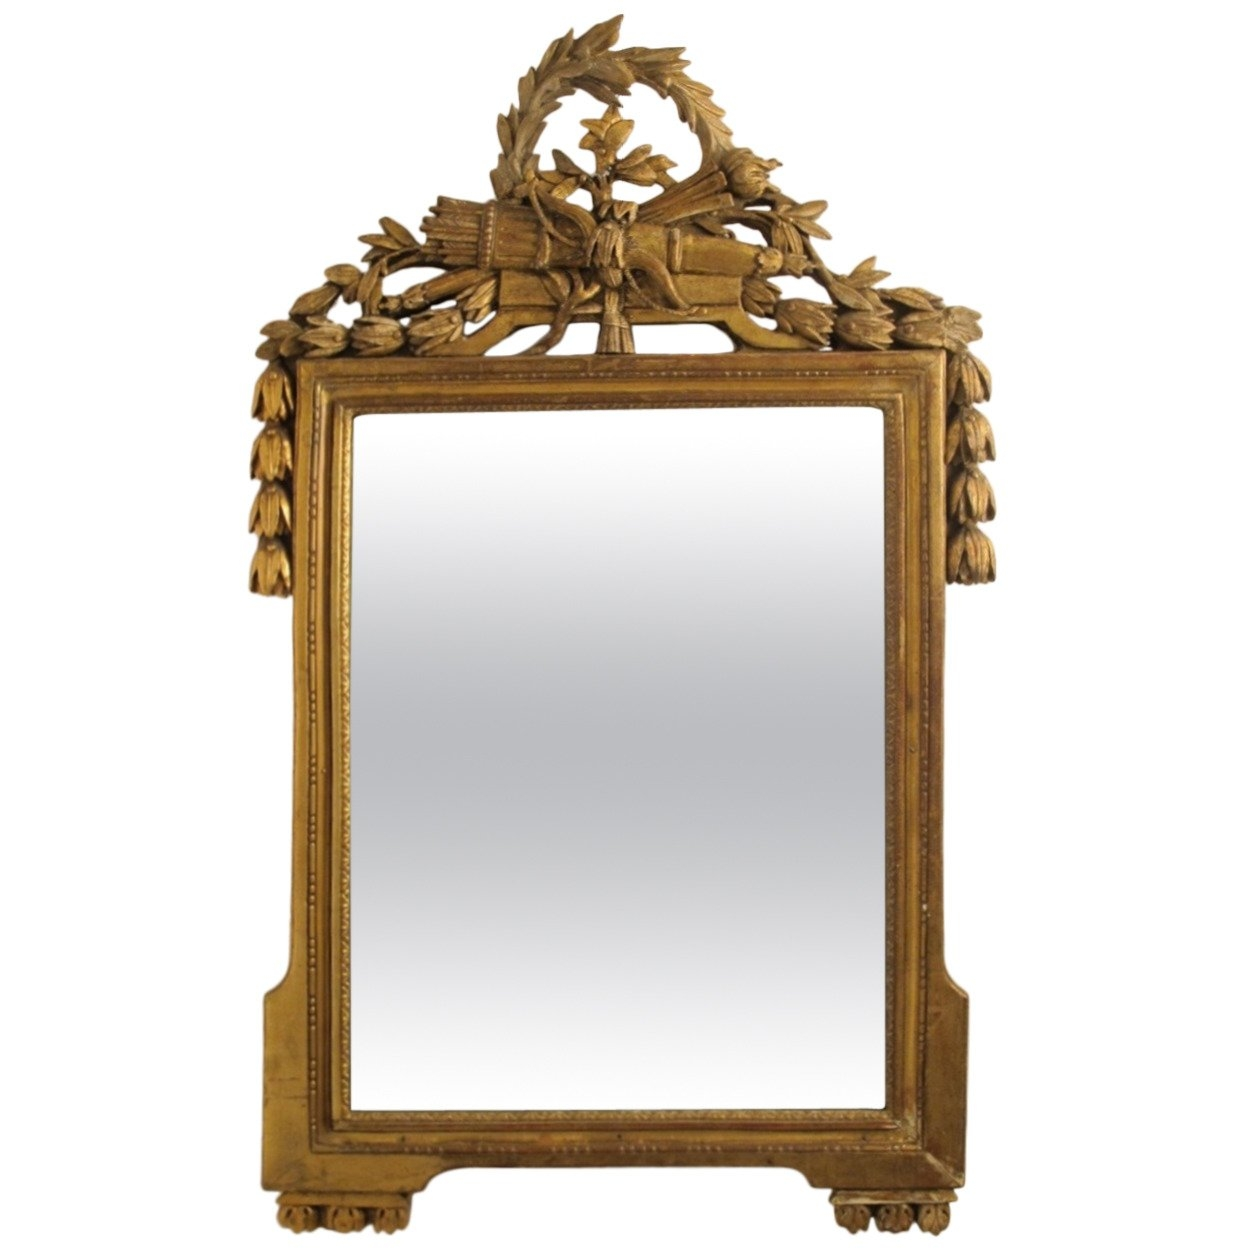 18th Century Louis Xvi Gilt Framed Mirror For Sale At 1stdibs In Gilt Framed Mirrors (Image 2 of 15)